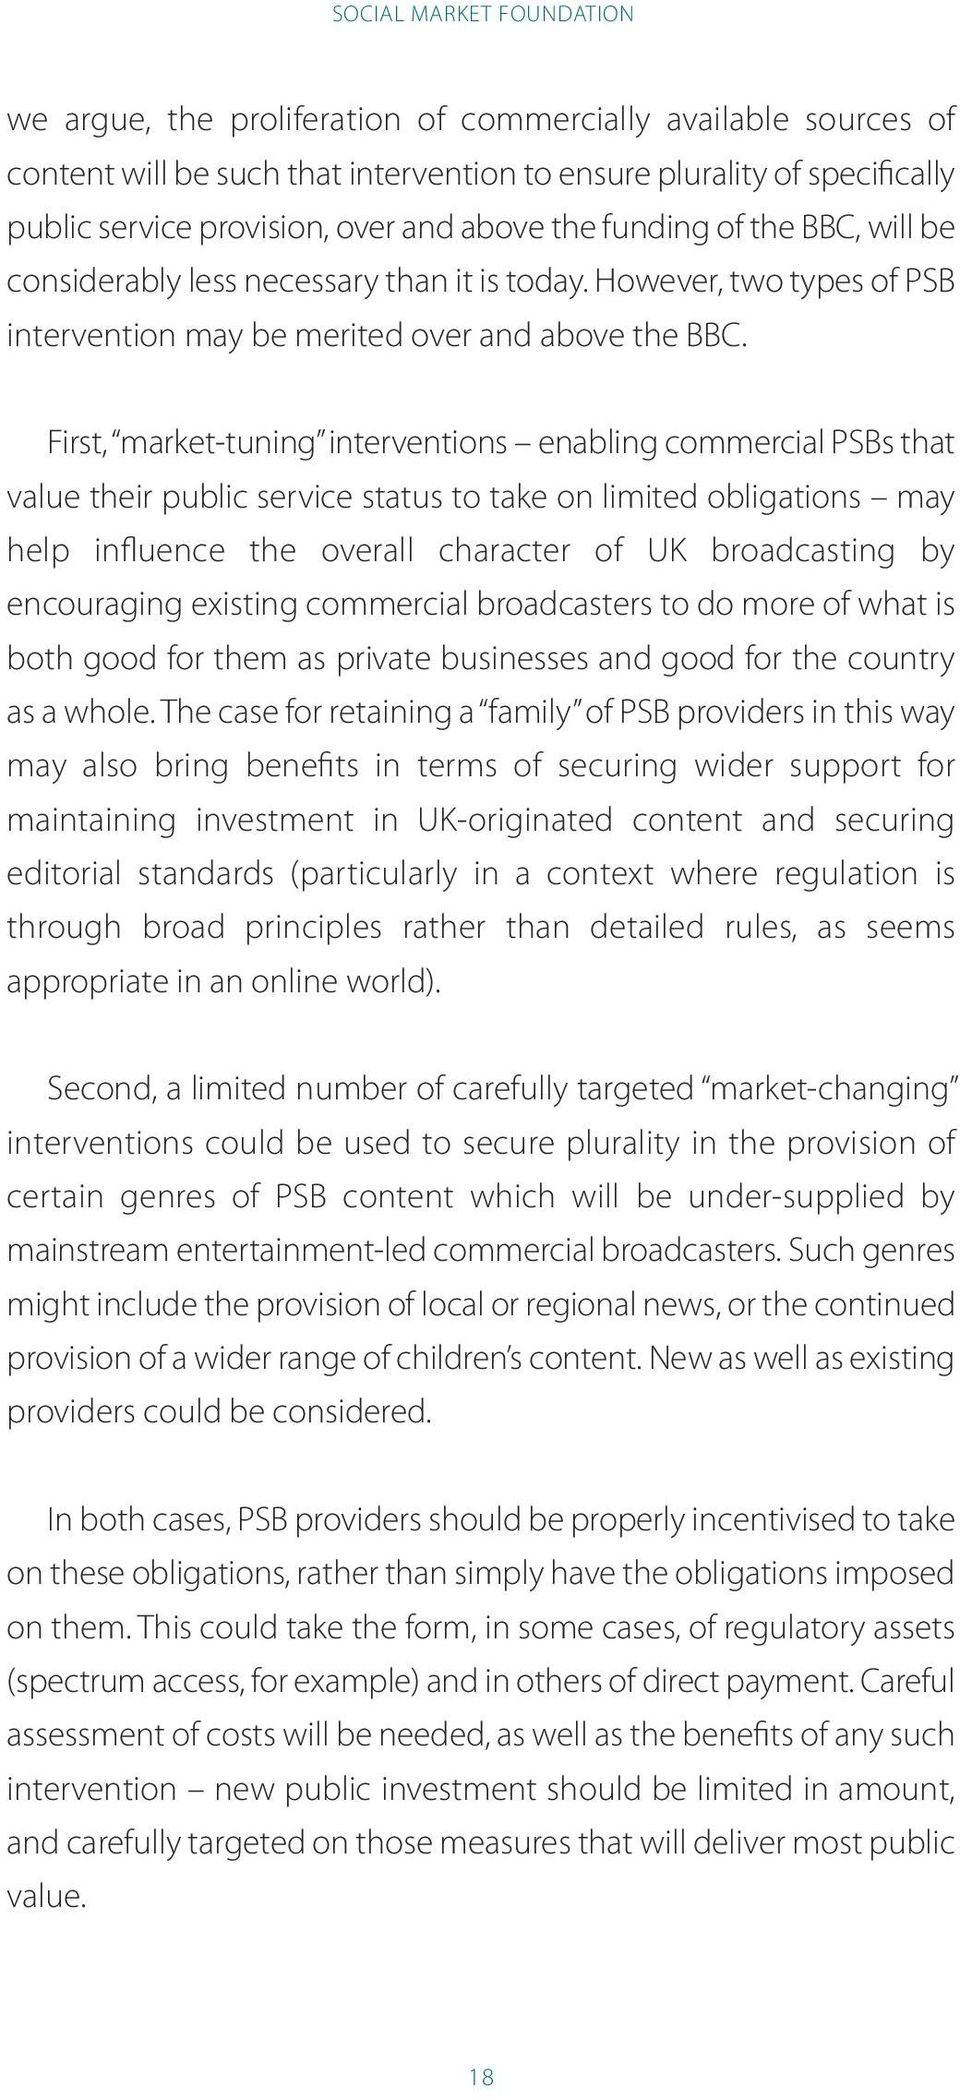 First, market-tuning interventions enabling commercial PSbs that value their public service status to take on limited obligations may help influence the overall character of uk broadcasting by